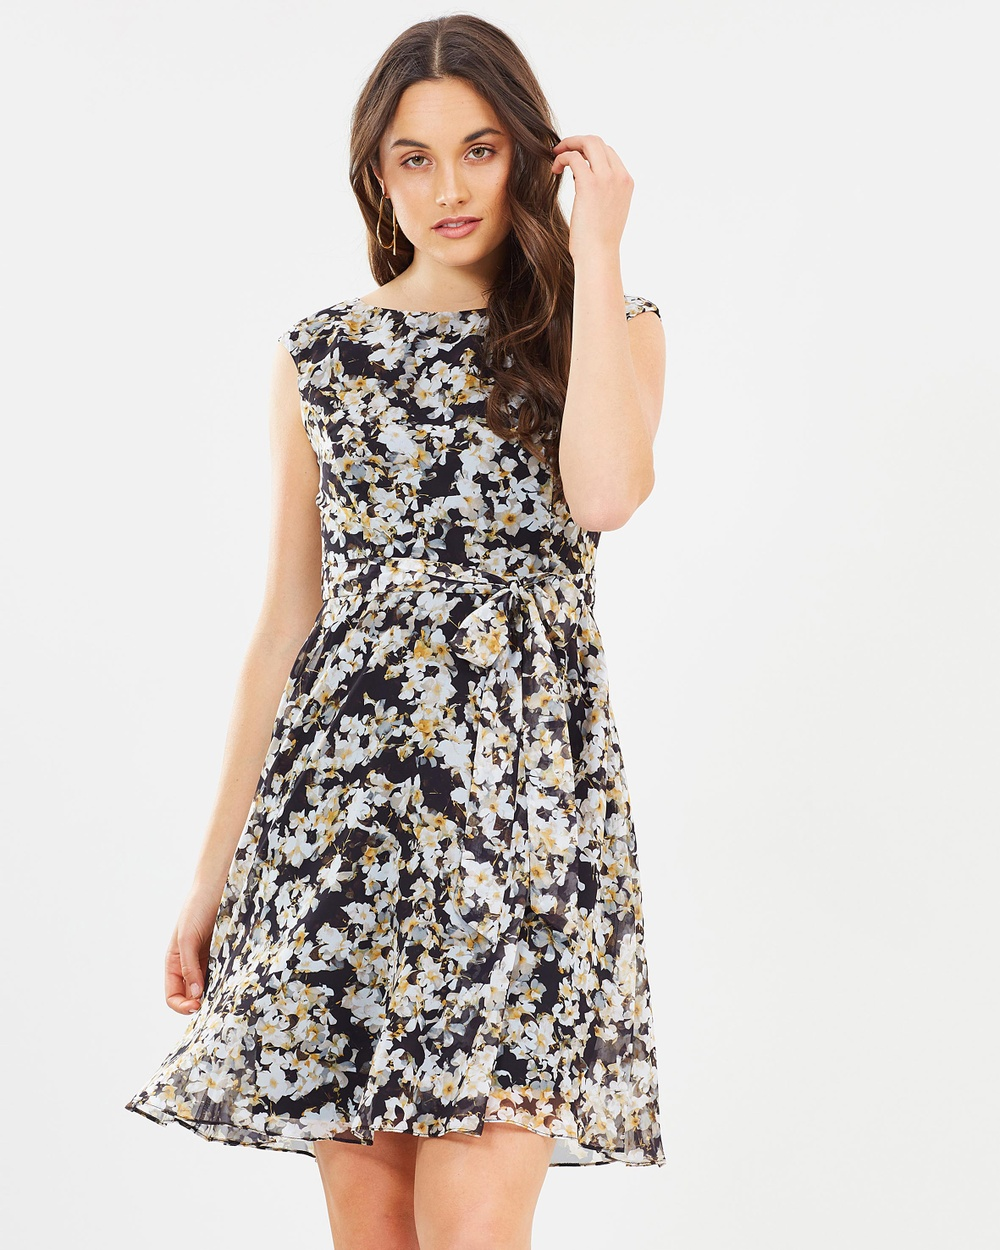 Wallis Ditzy Fit Flare Dress Printed Dresses Black Ditzy Fit Flare Dress